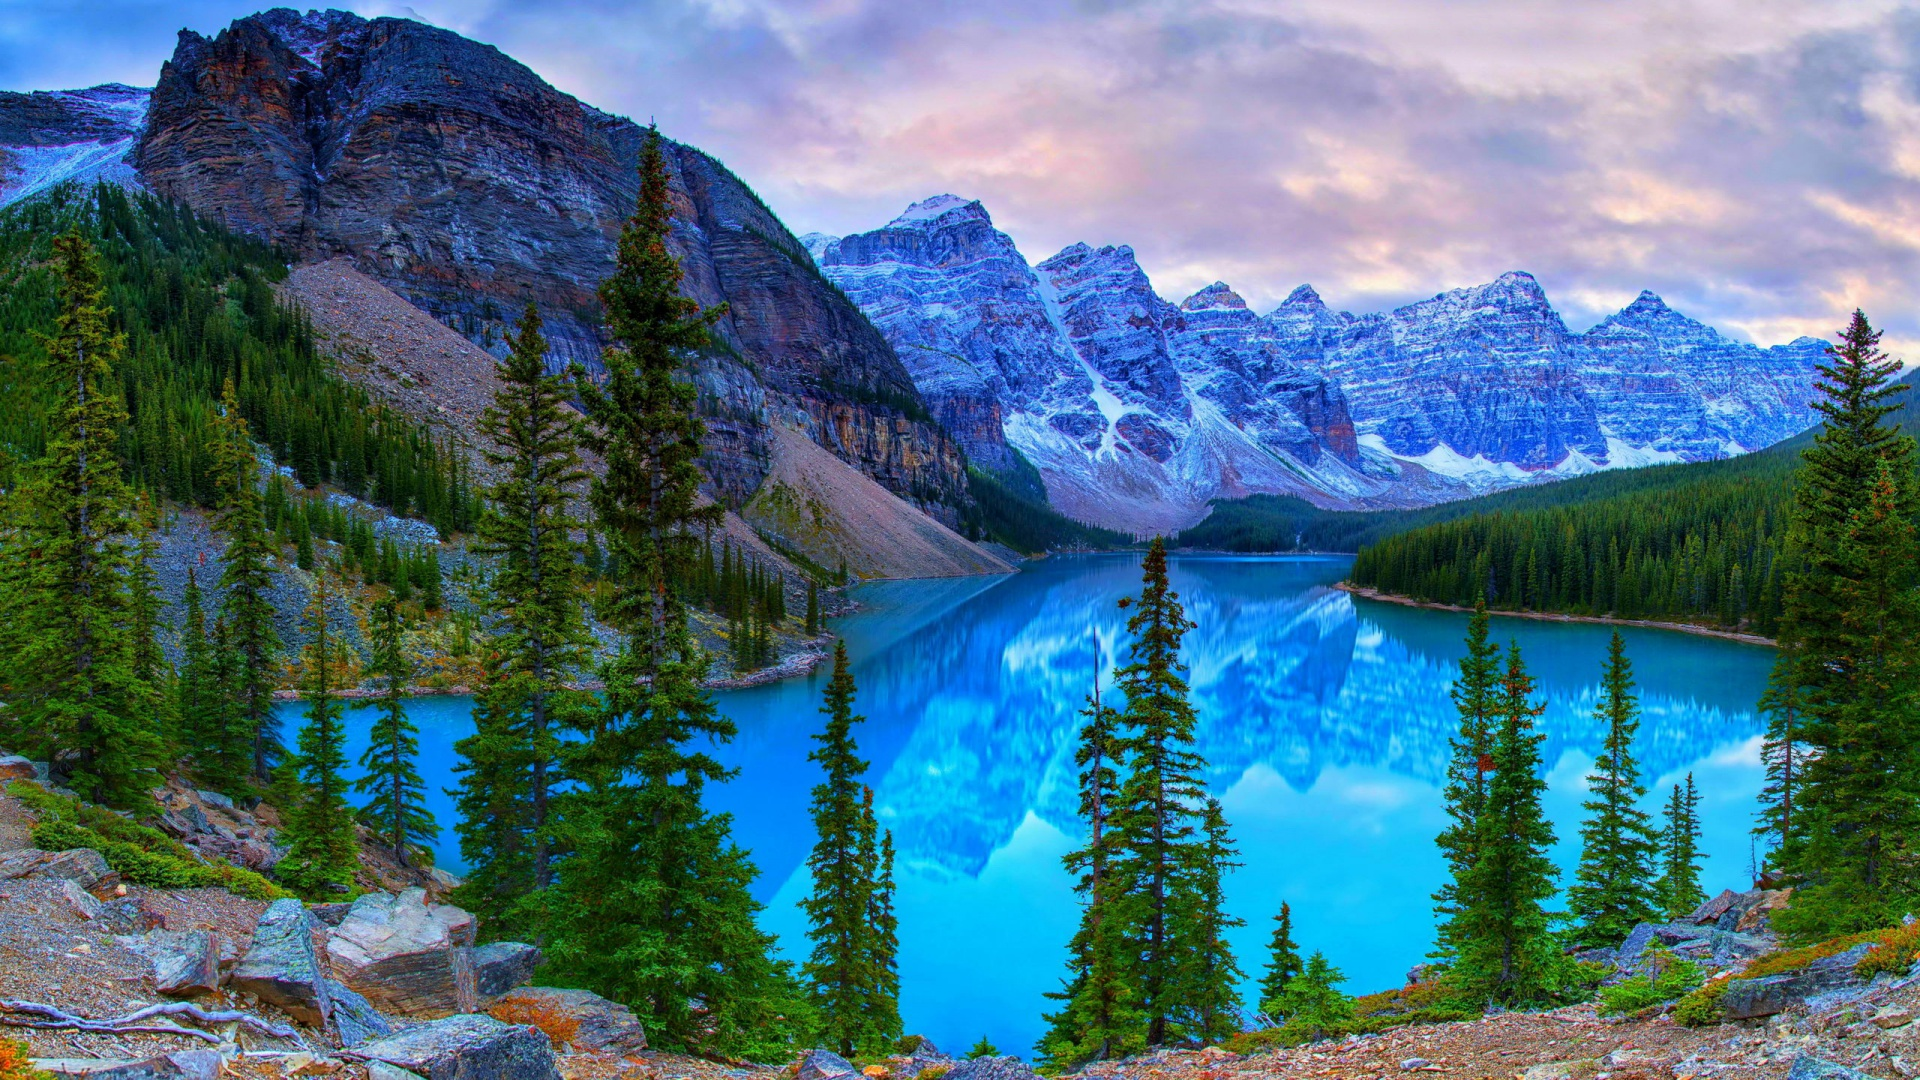 1920x1080 canada mountains lake moraine desktop pc and mac for Home wallpaper canada